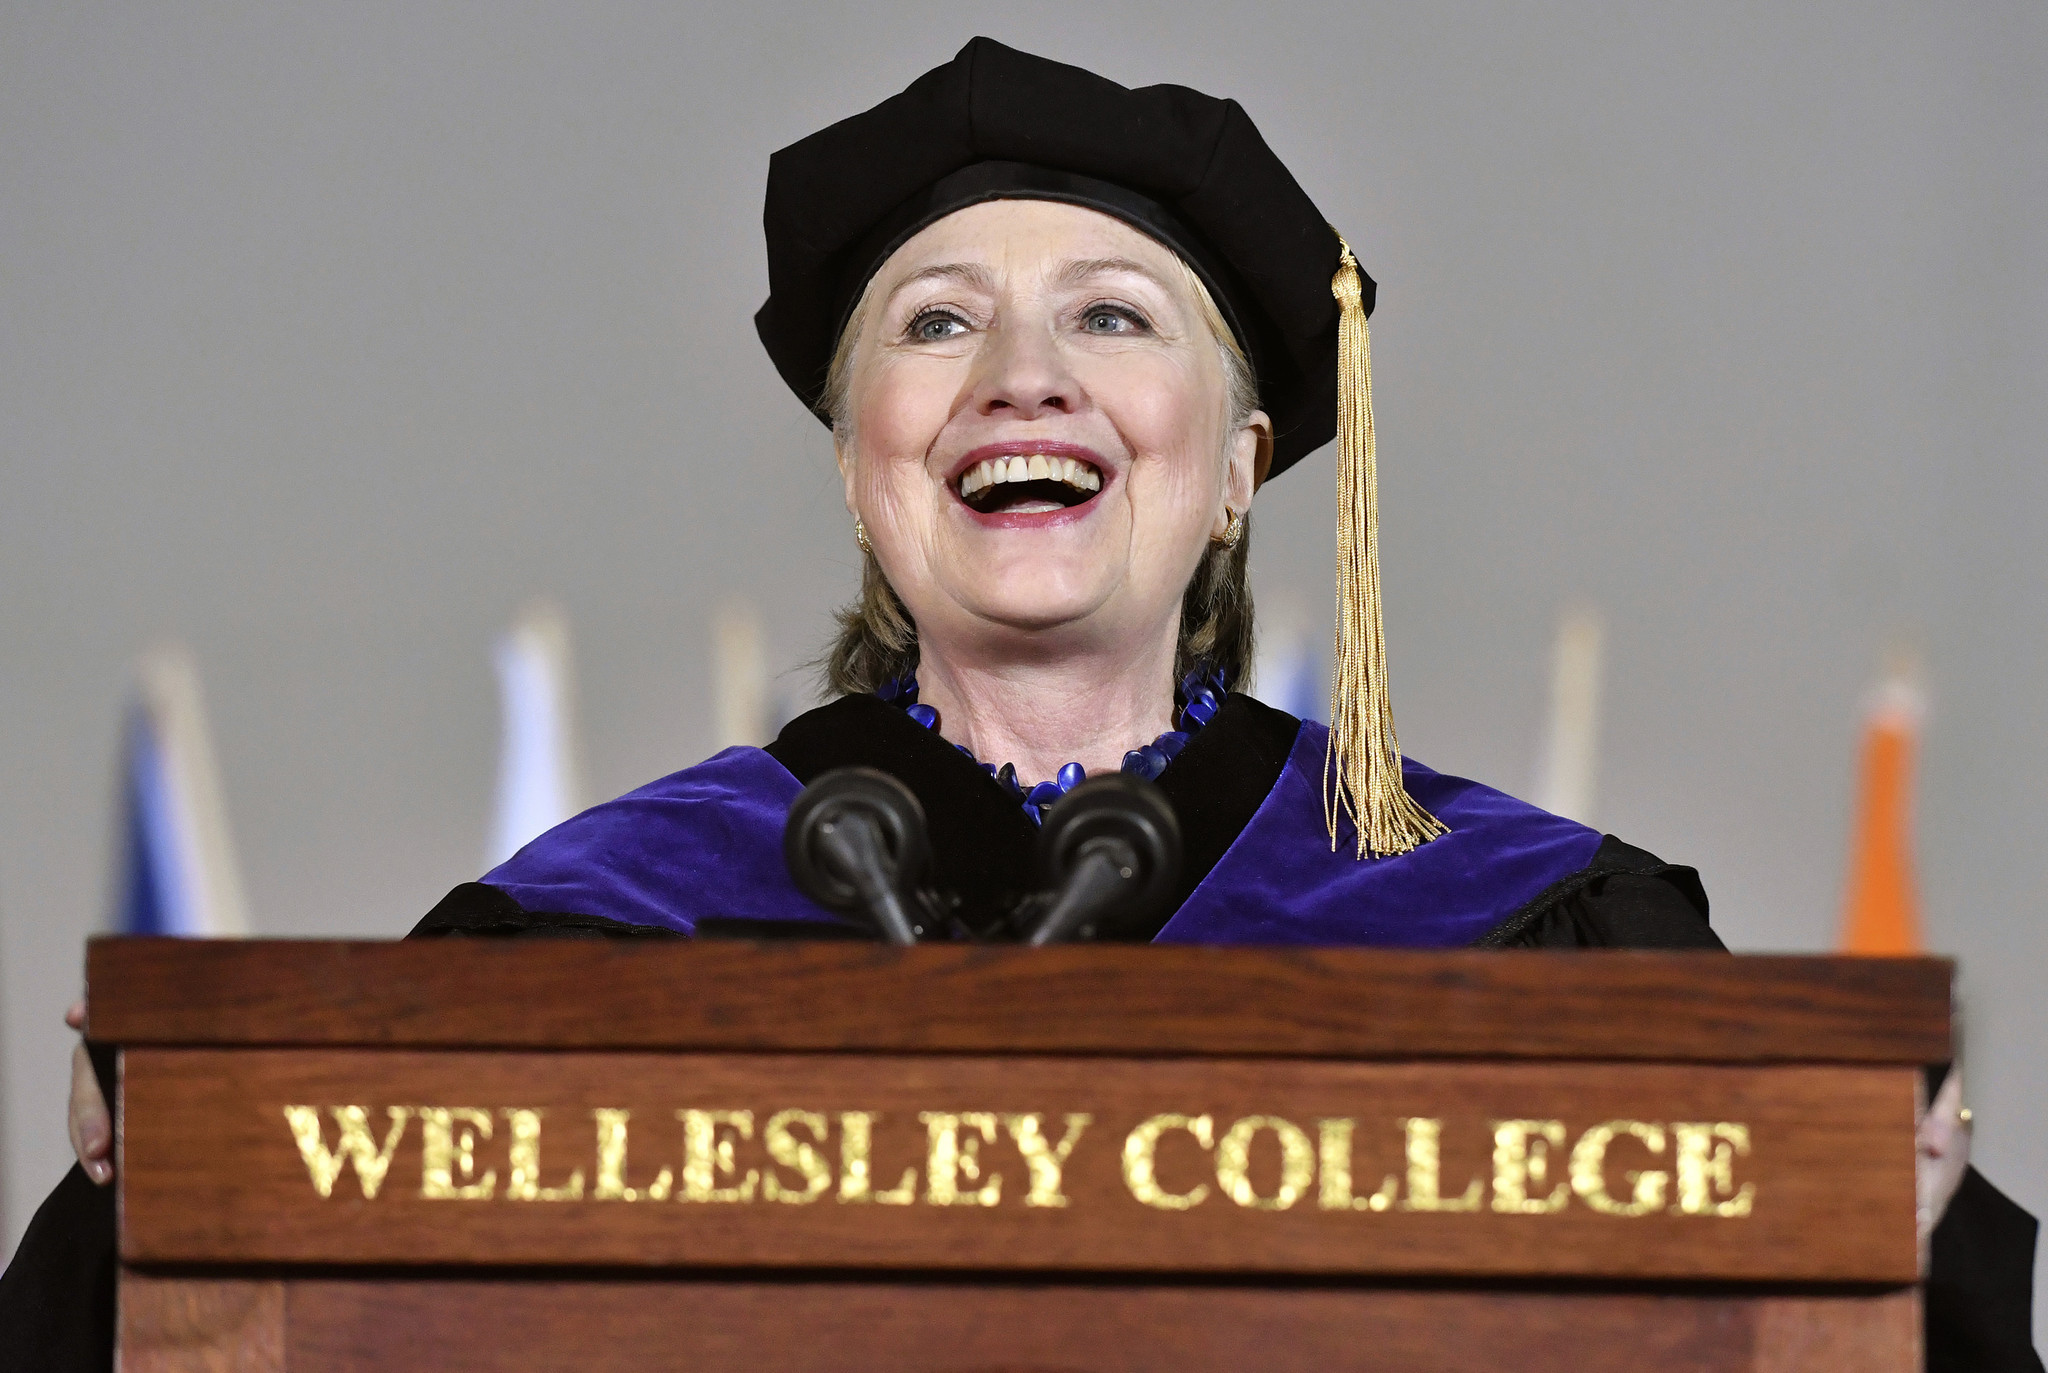 Hillary Clinton delivers the commencement address at Wellesley College in Wellesley, Mass., on Friday. (Josh Reynolds / Associated Press)